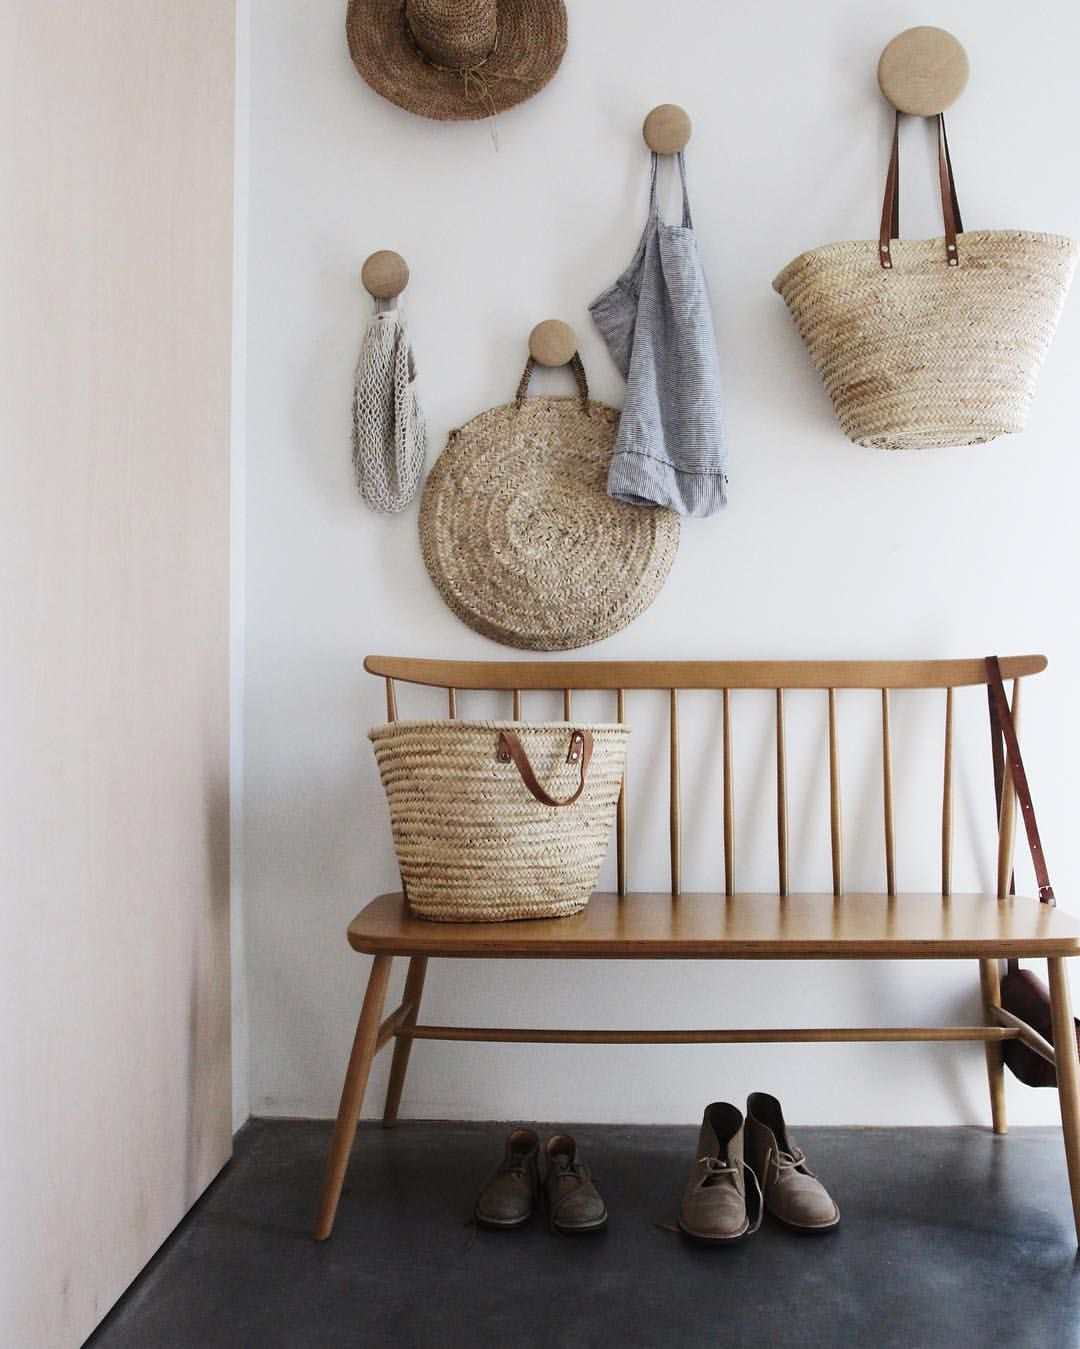 Inspirational Hallway Benches with Storage